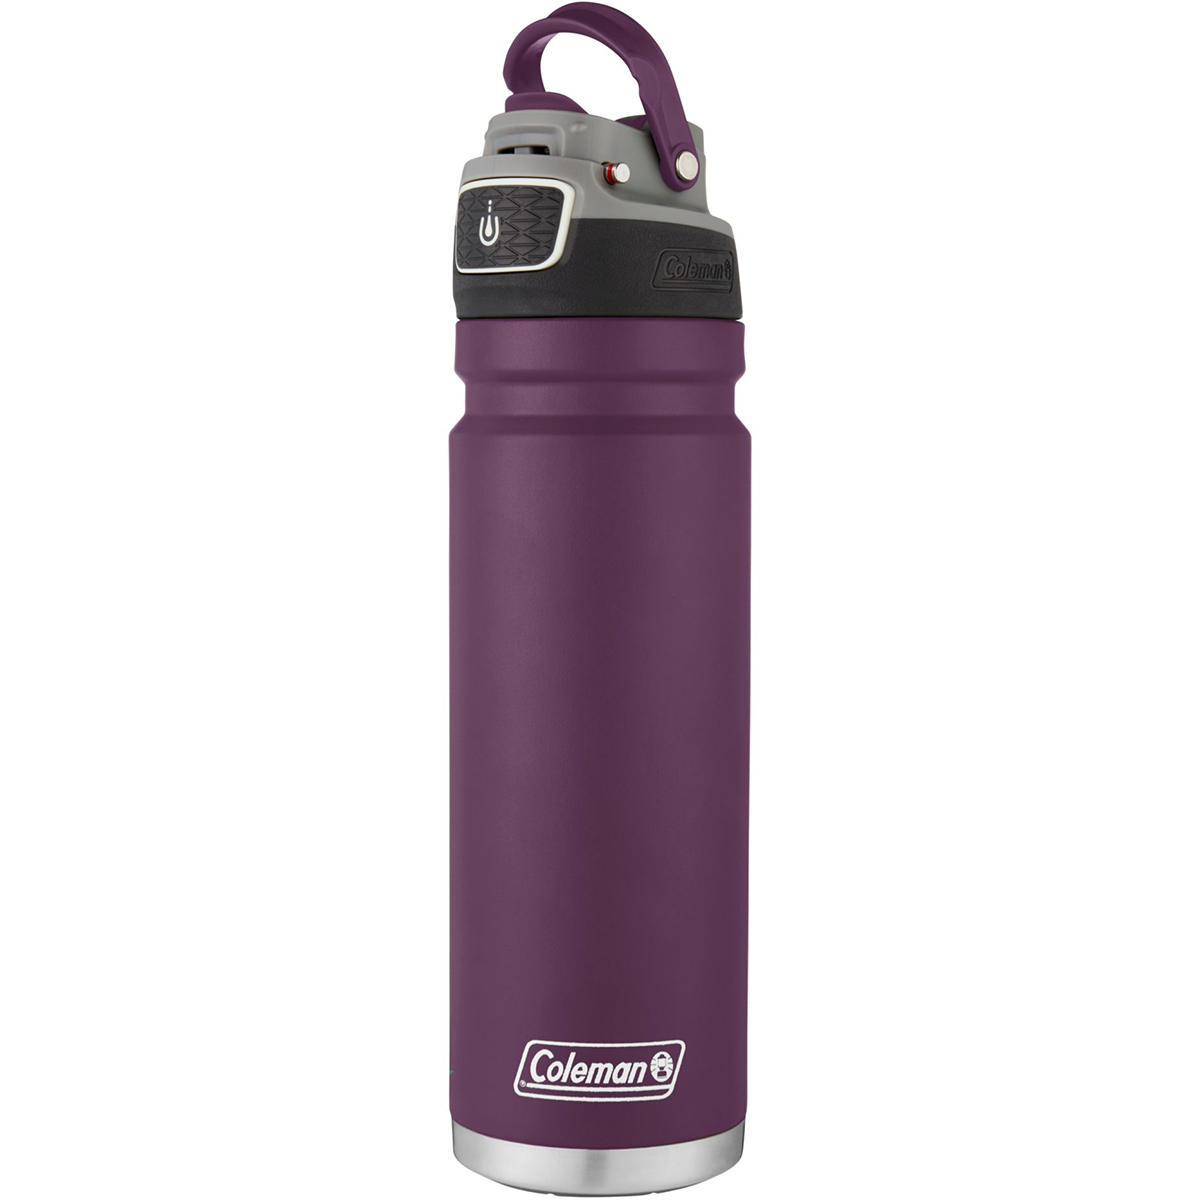 Coleman-24-oz-Free-Flow-Autoseal-Insulated-Stainless-Steel-Water-Bottle thumbnail 29